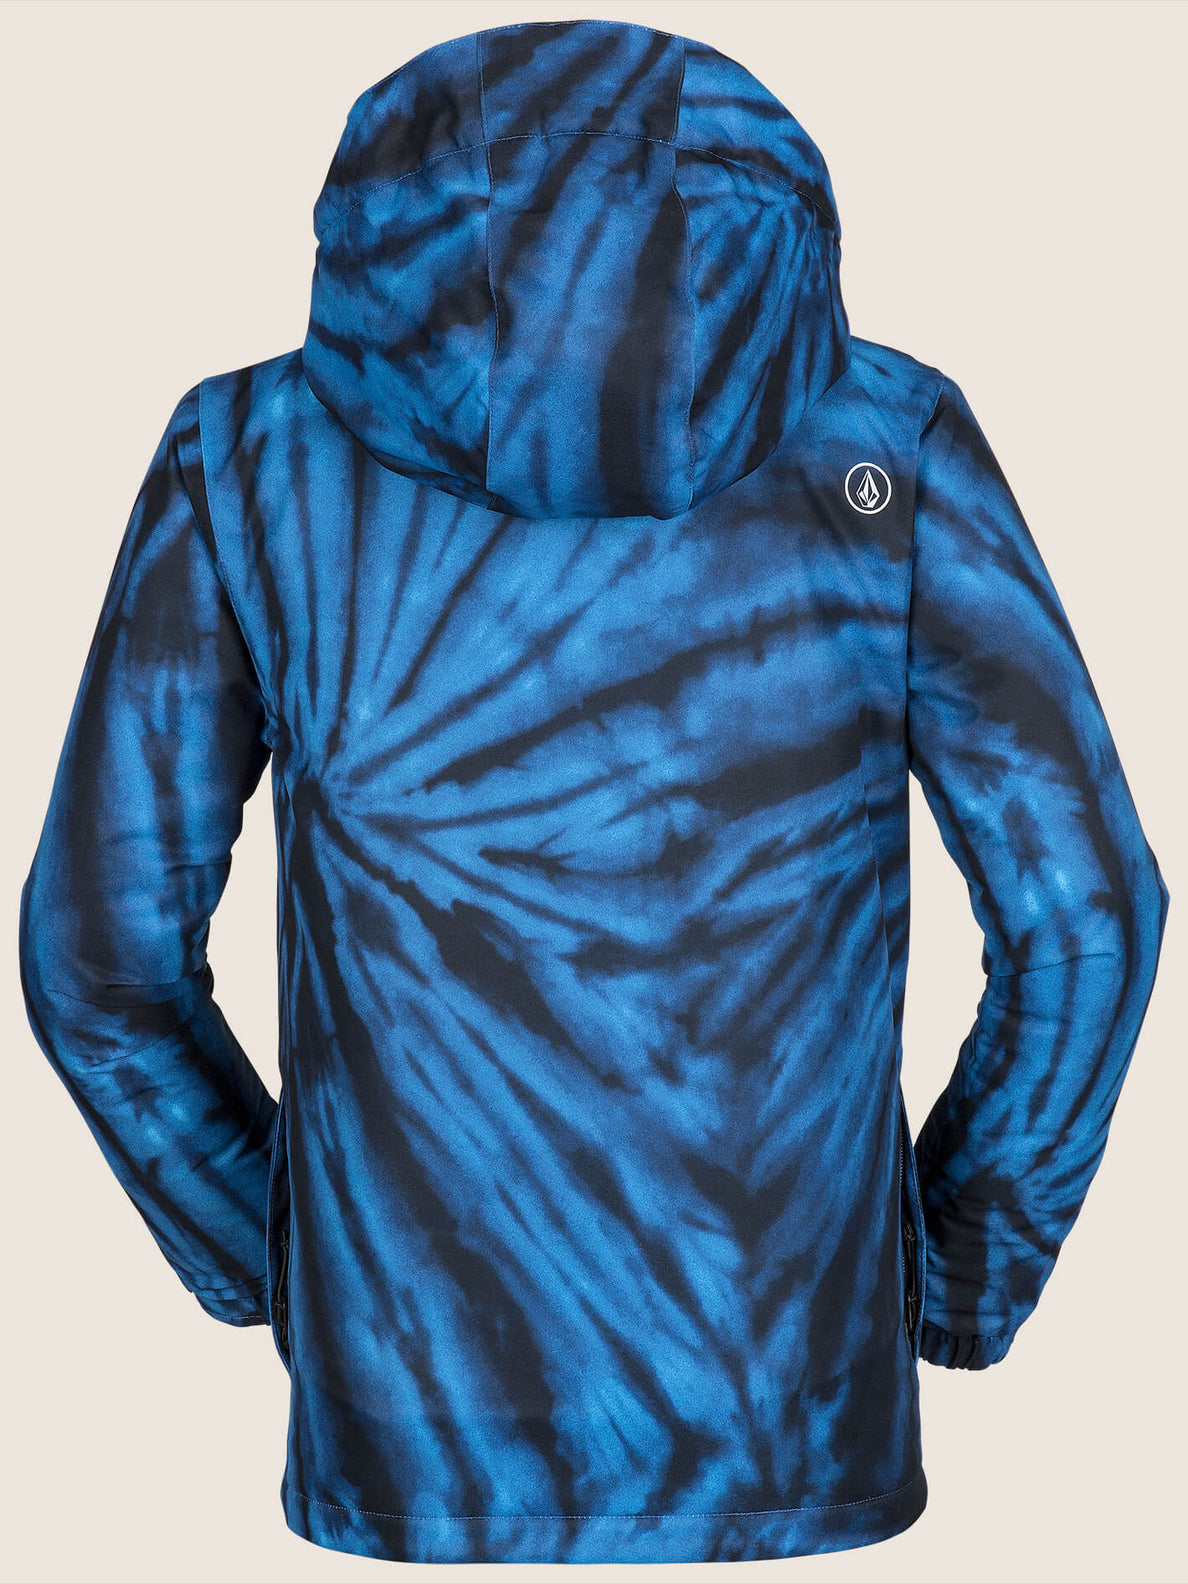 Ripley Insulated Jacket In Blue Tie-dye, Back View